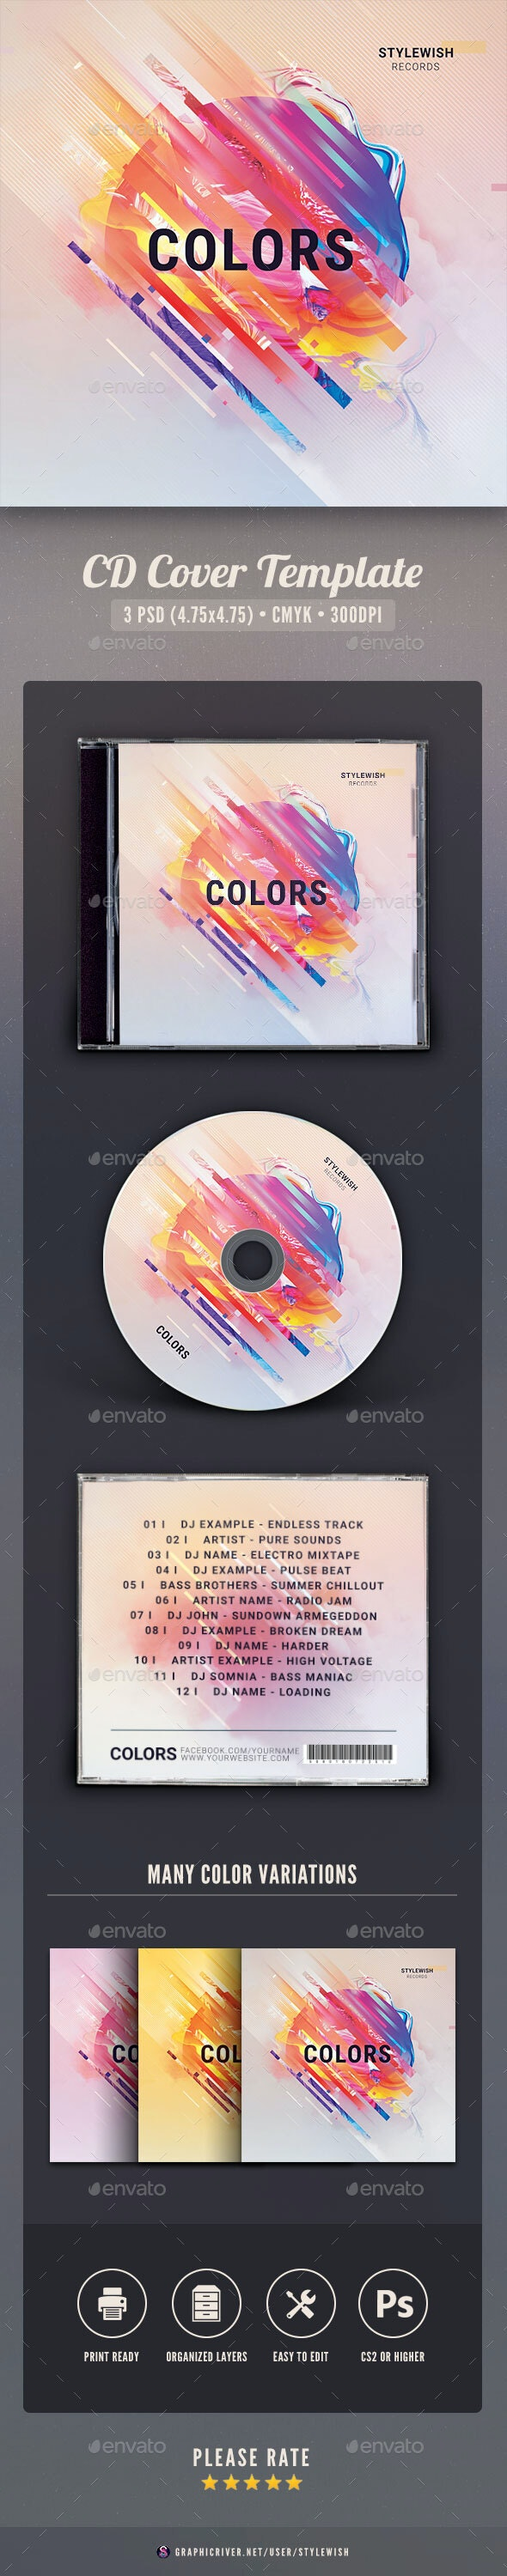 Colors CD Cover Artwork - CD & DVD Artwork Print Templates